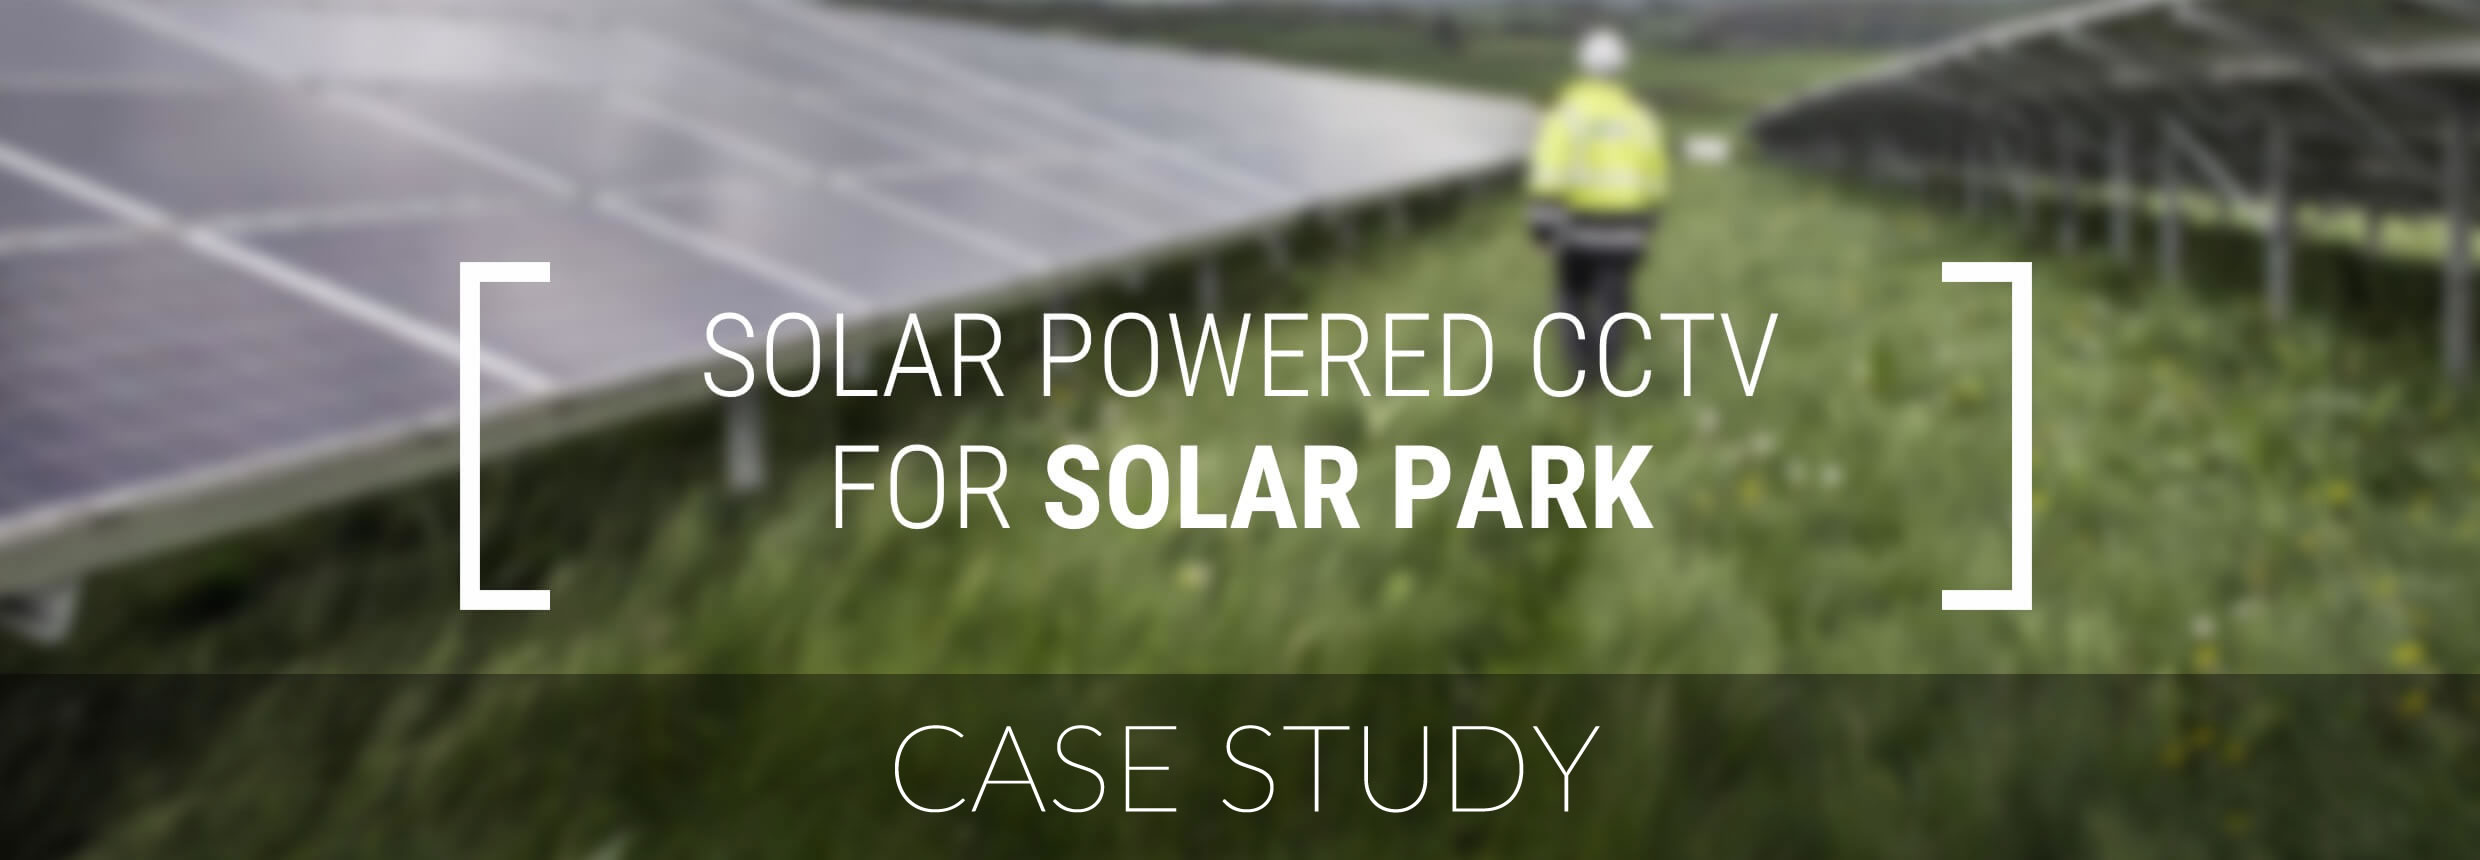 Clearway Case Study - CCTV Tower At Solar Farm